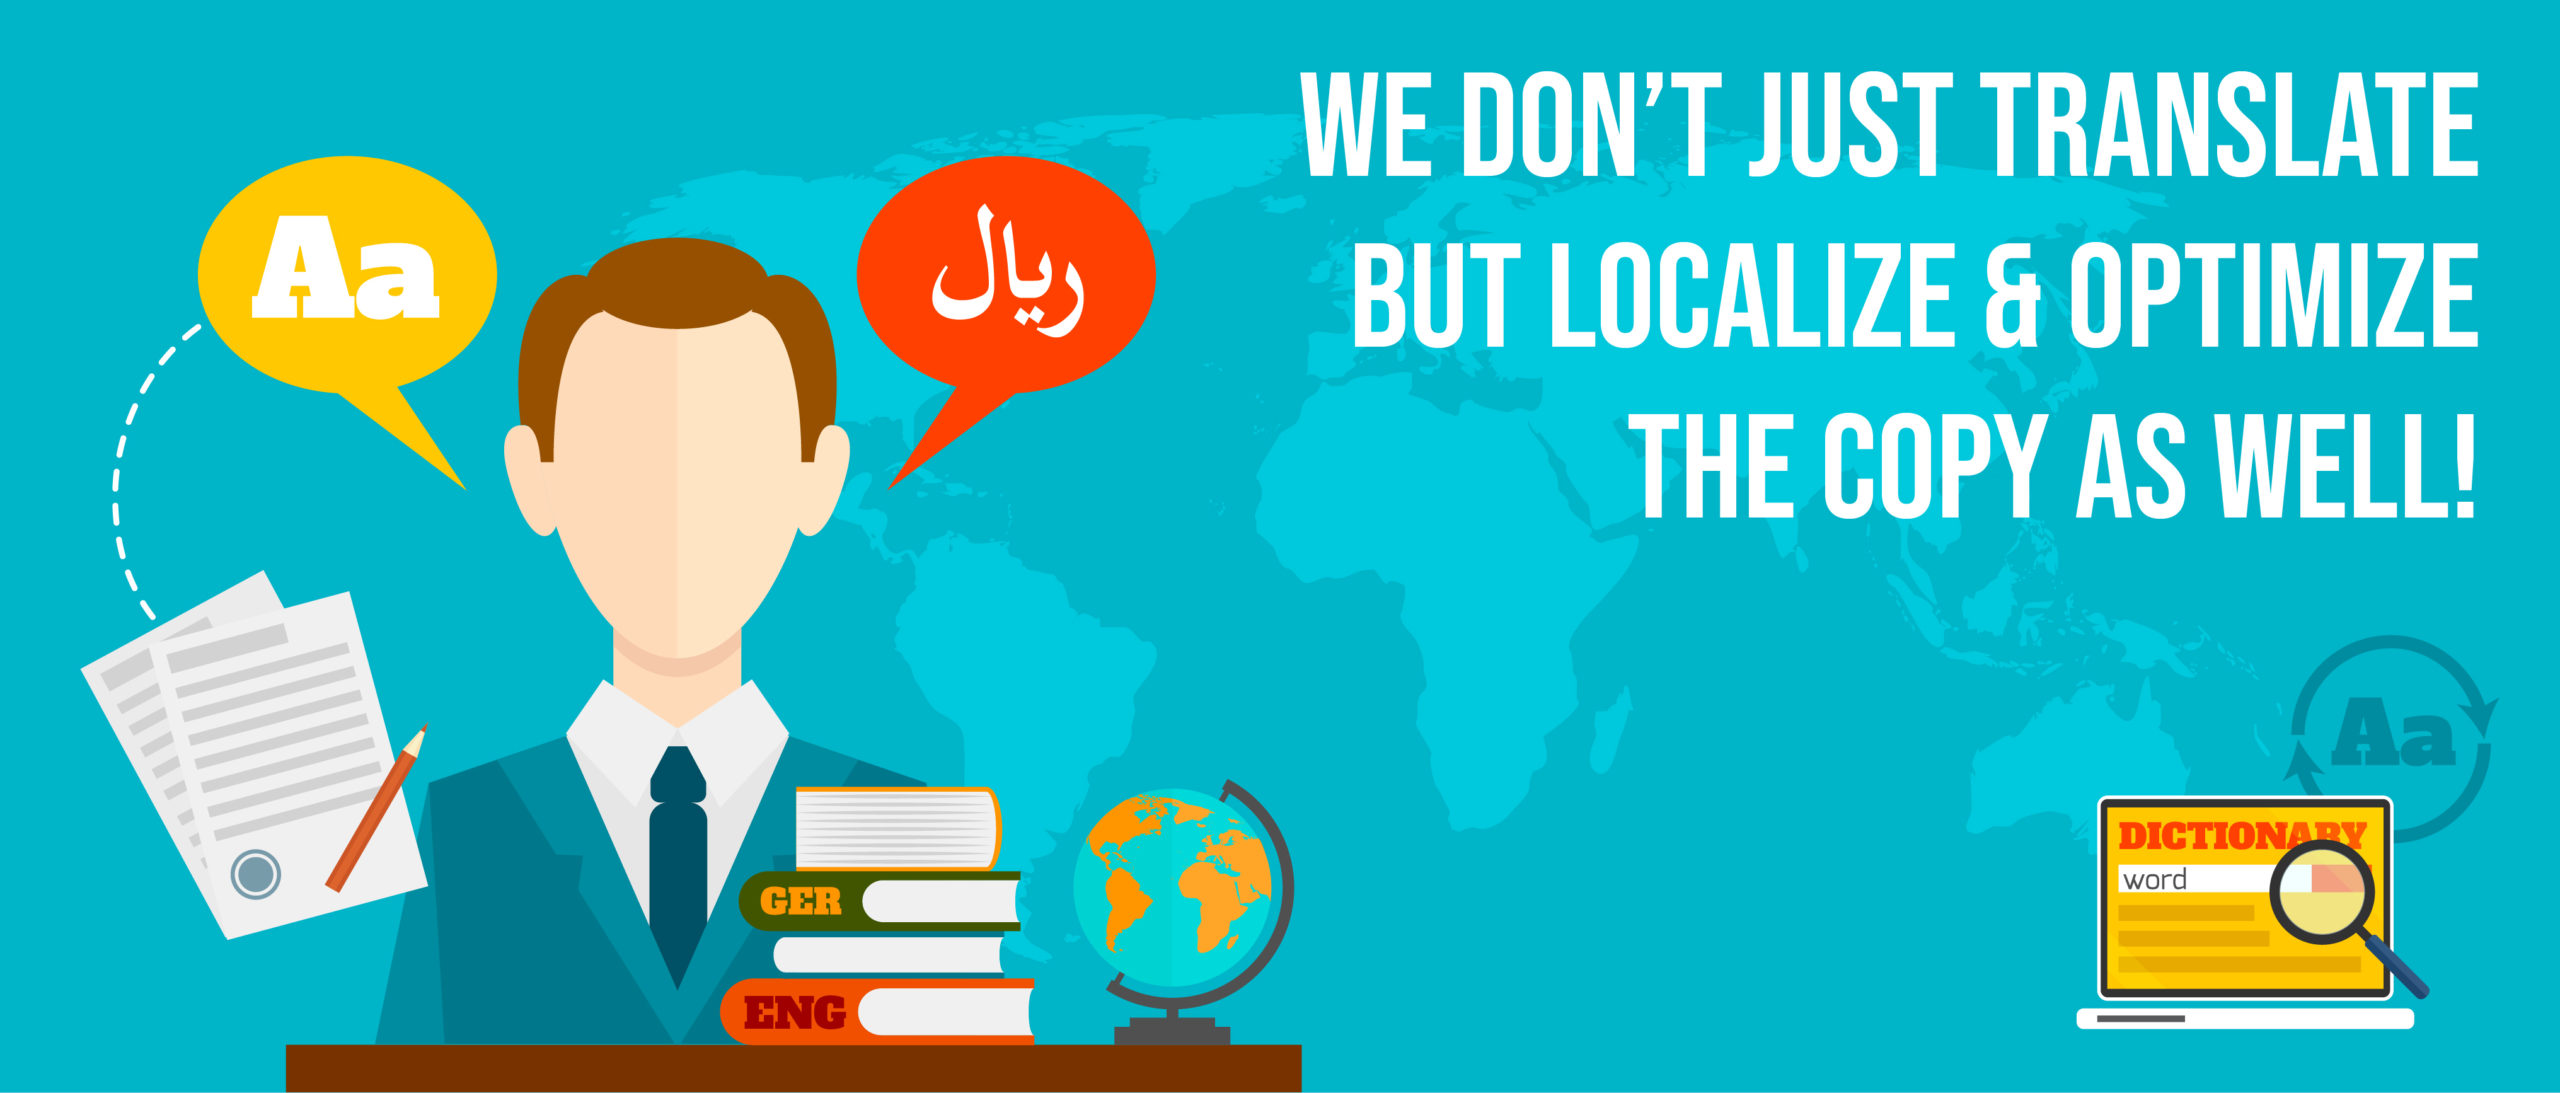 If you are serious about scaling your business globally and want to avoid these embarrassing translation mistakes, you will want your foreign listings to be handled by professional and experienced Amazon Listing Translation Service like eStore Factory.